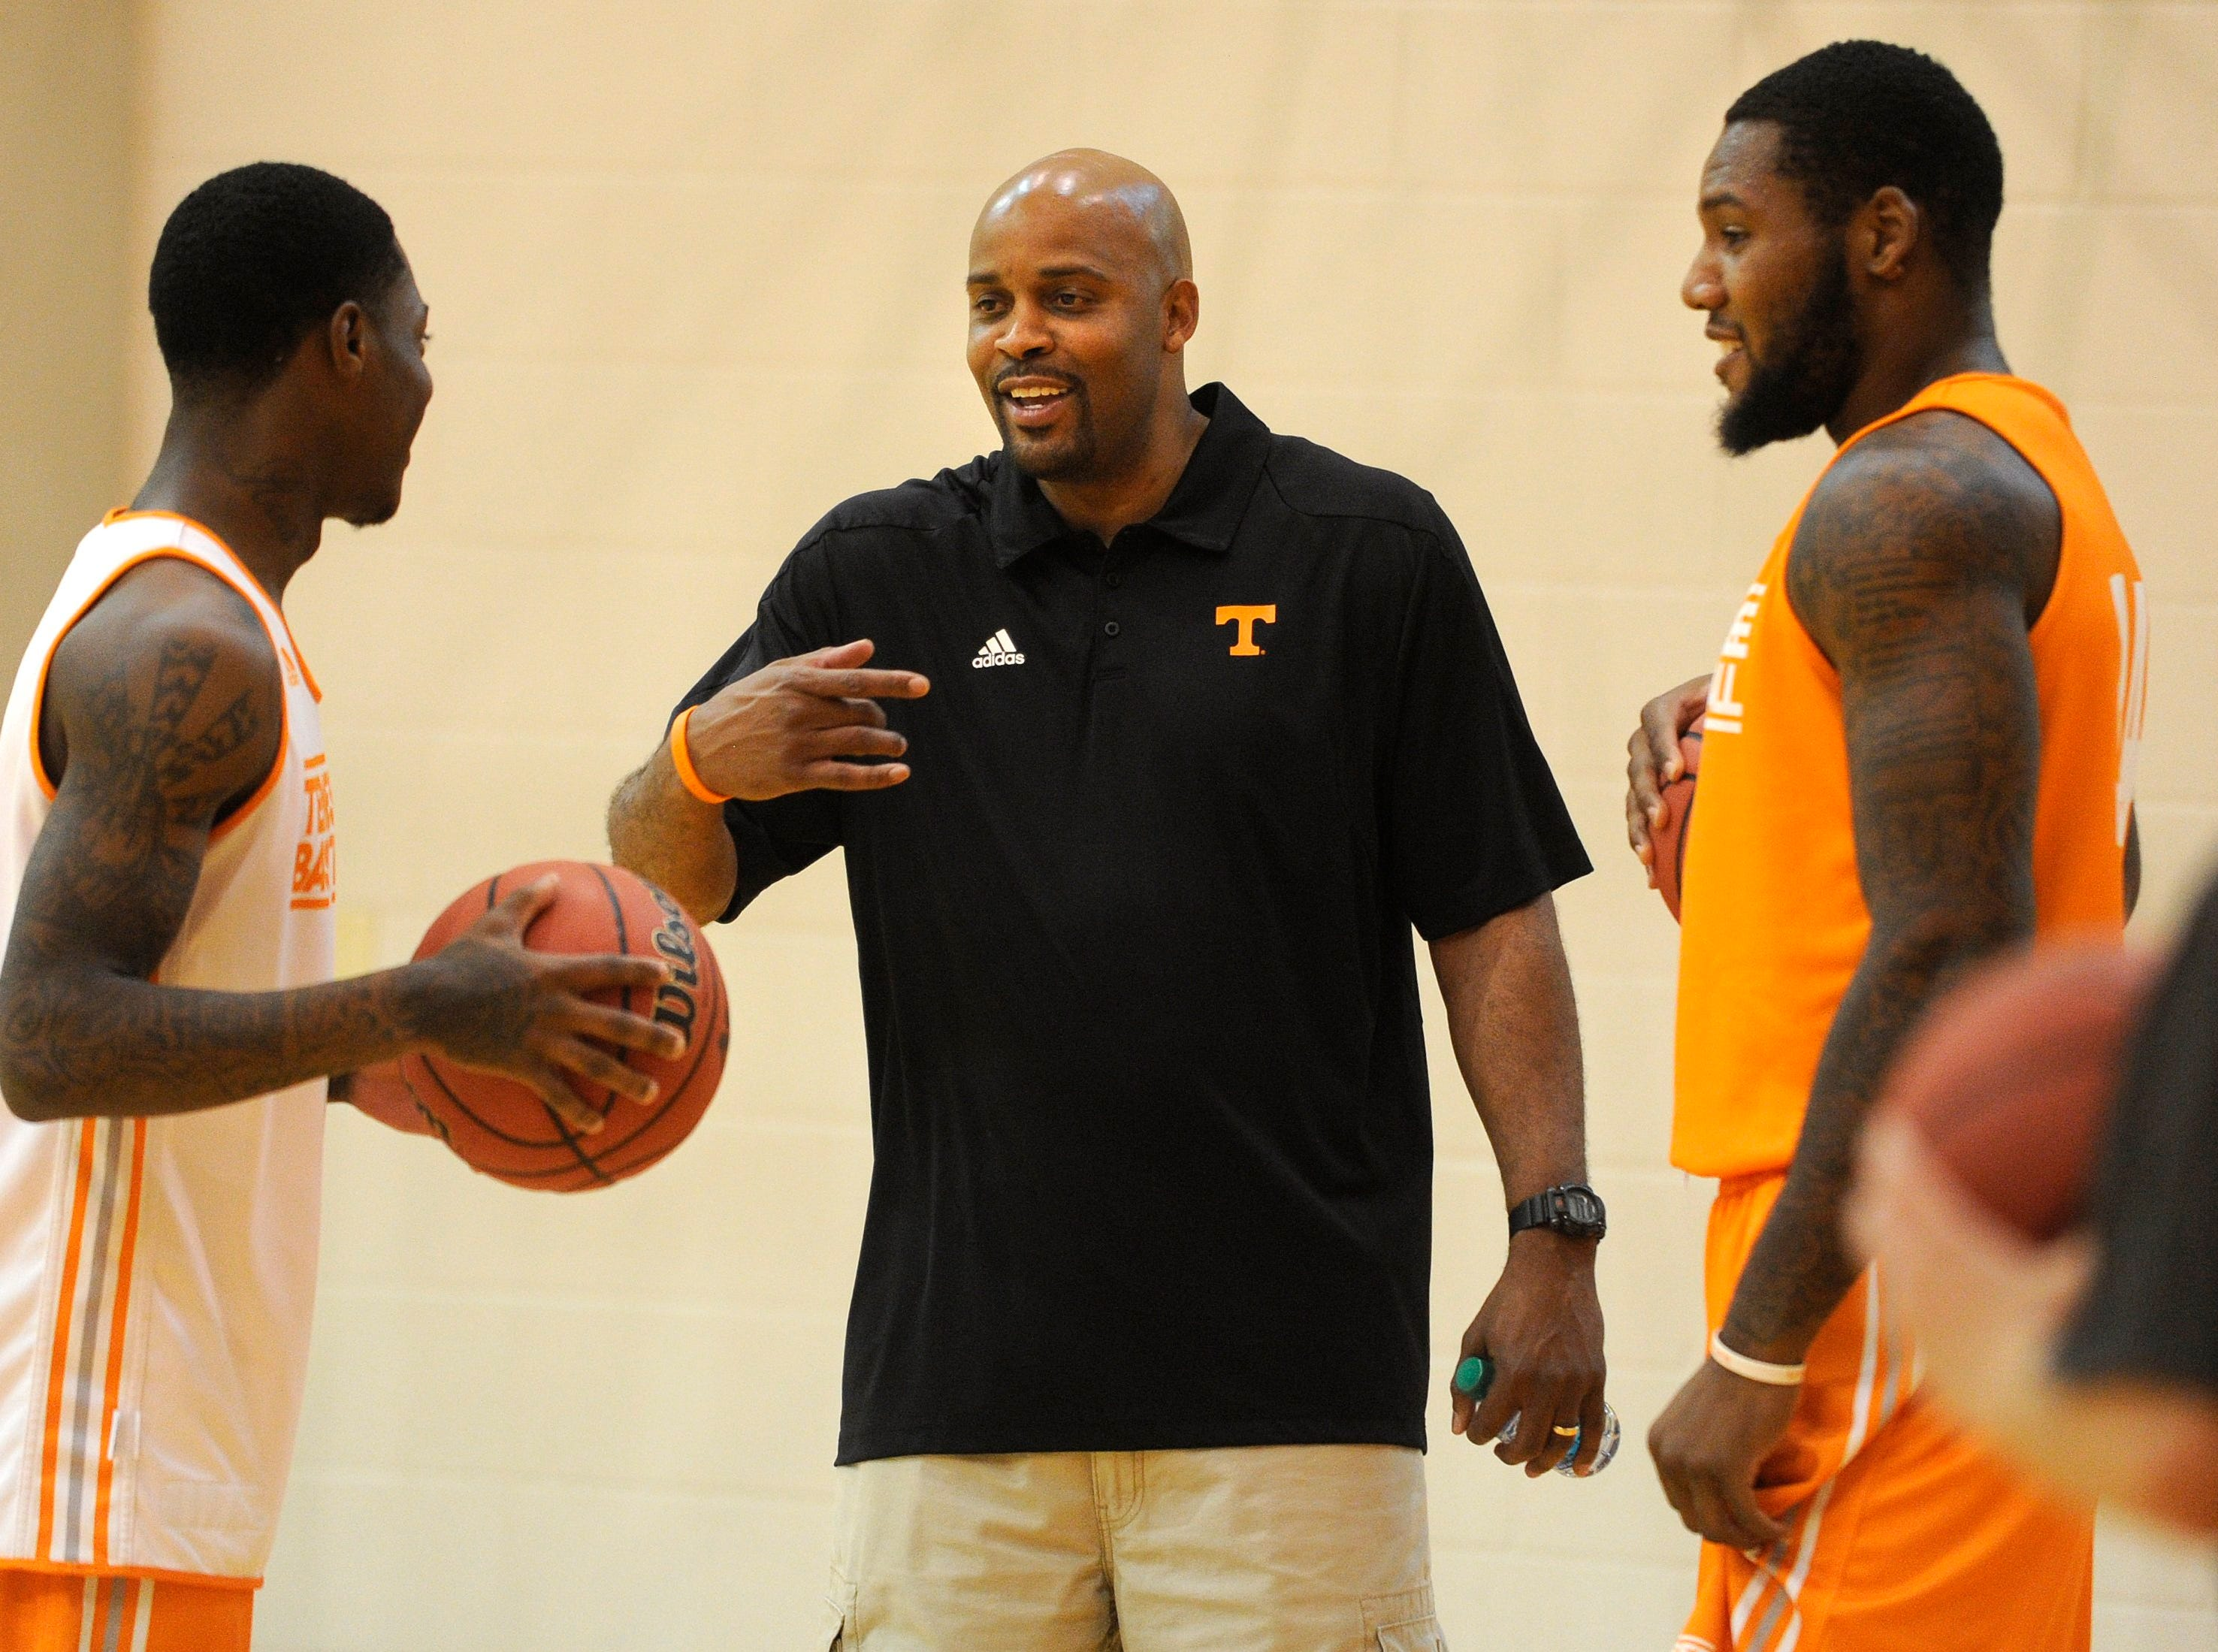 Head coach Cuonzo Martin chats with players during the men's basketball team's practice at University of Tennessee's Pratt Pavillion in Knoxville on Wednesday, Oct. 2, 2013.